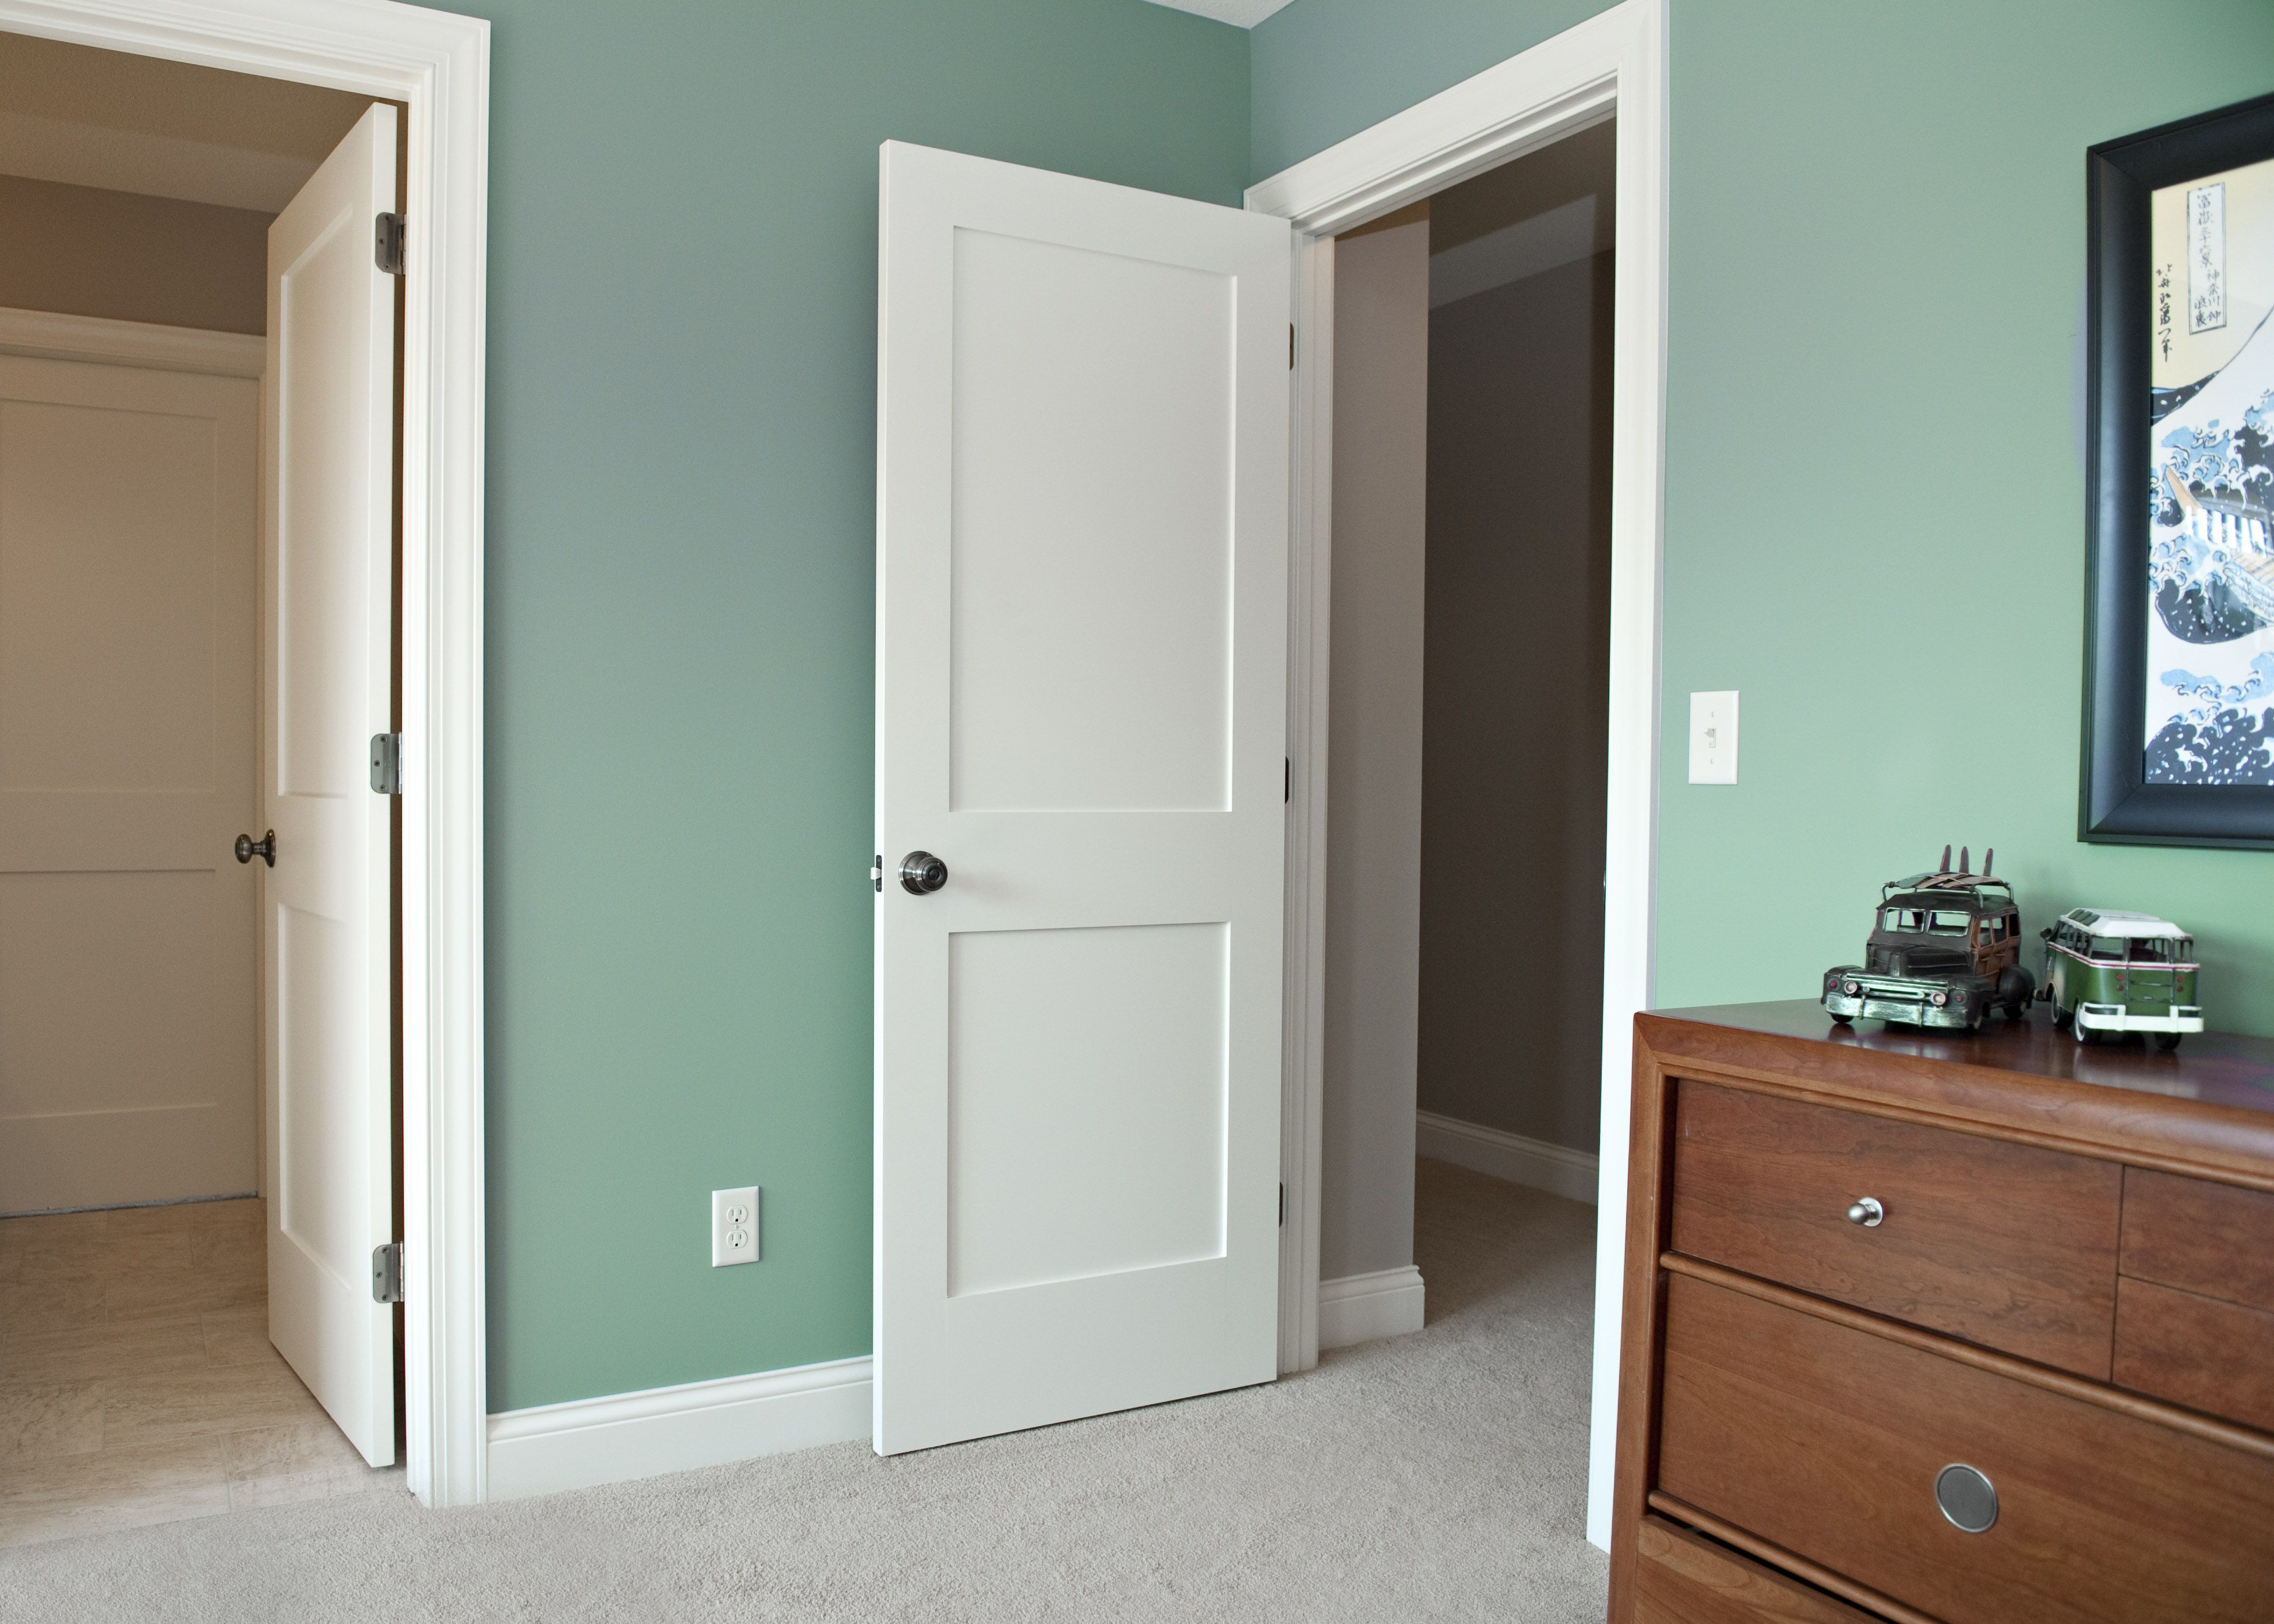 White interior doors 3 panel - Flat Panel Interior Doors Design And Description Interior